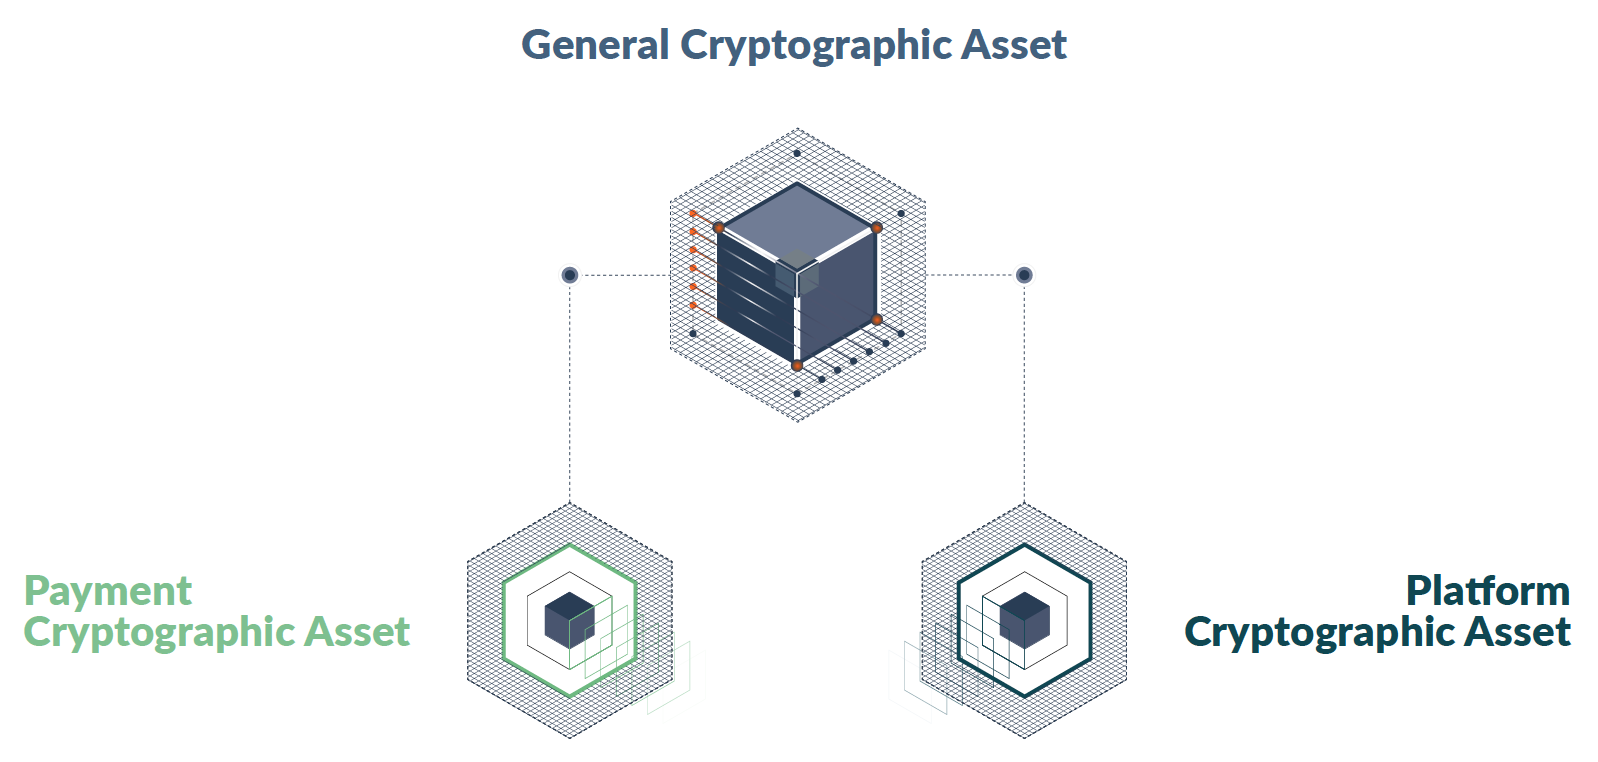 General cryptographic assets